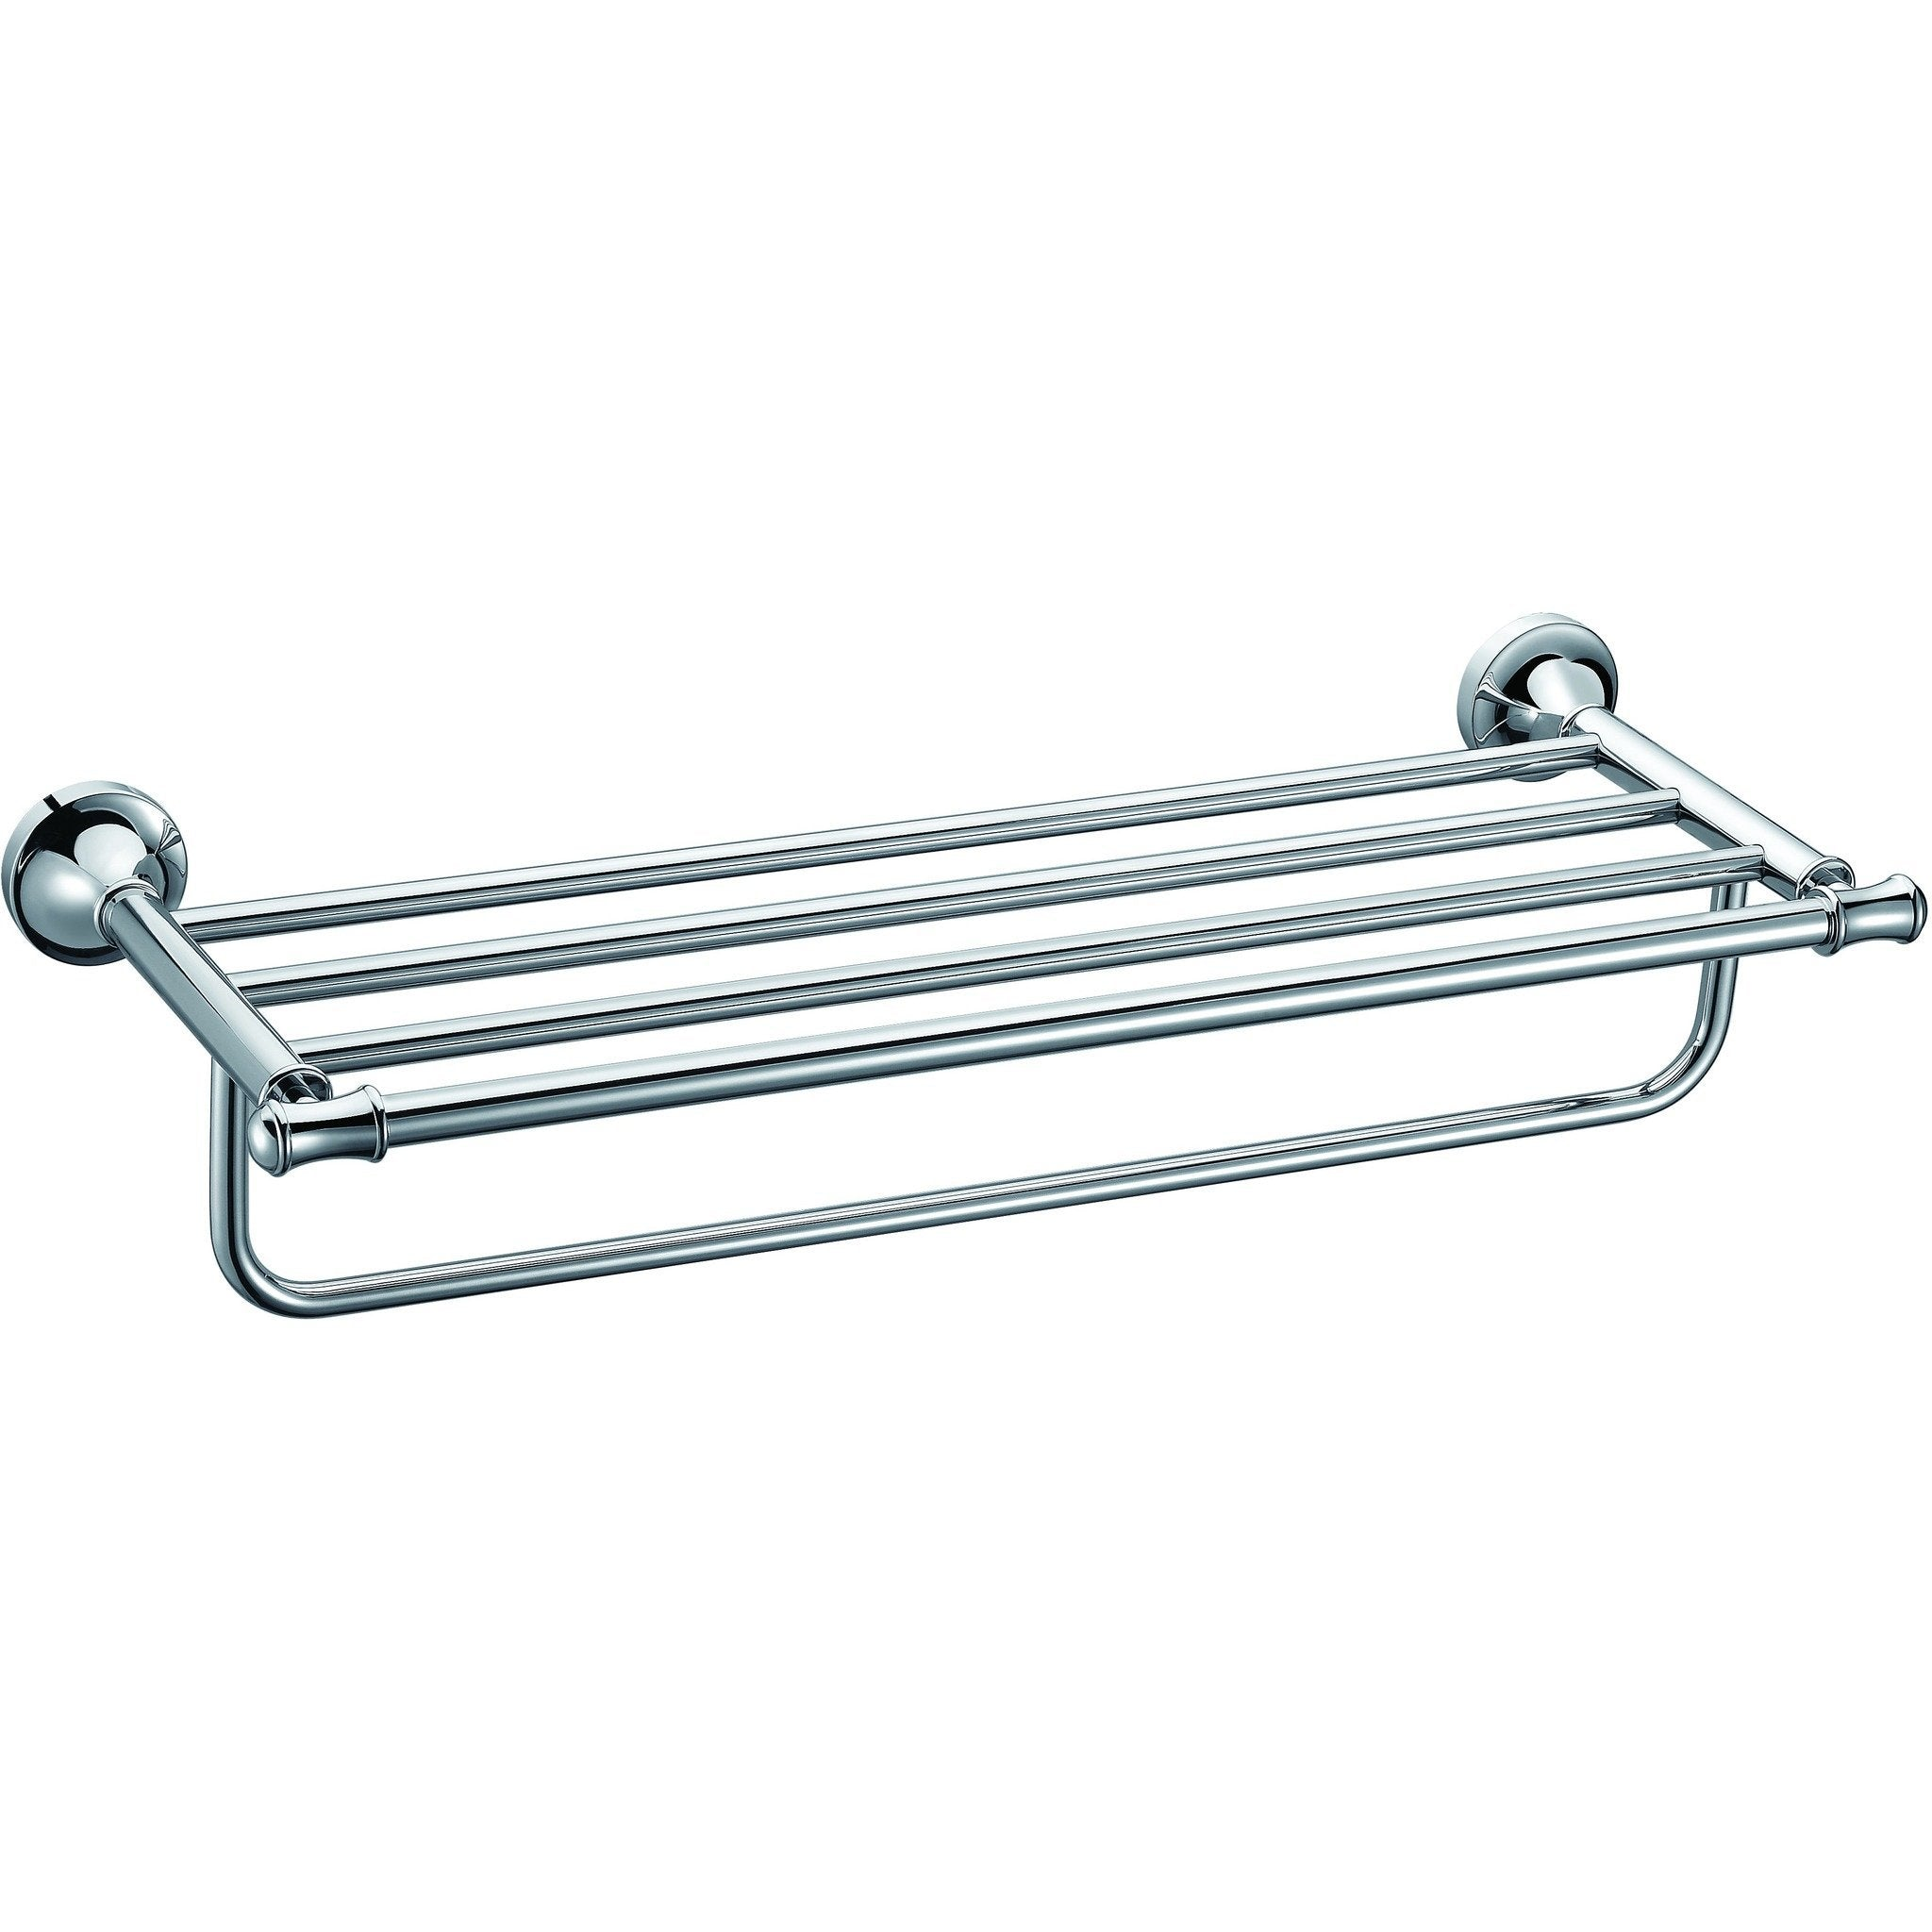 ALFI brand AB9583 Polished Chrome 23 inch Towel Bar & Shelf Bathroom Accessory